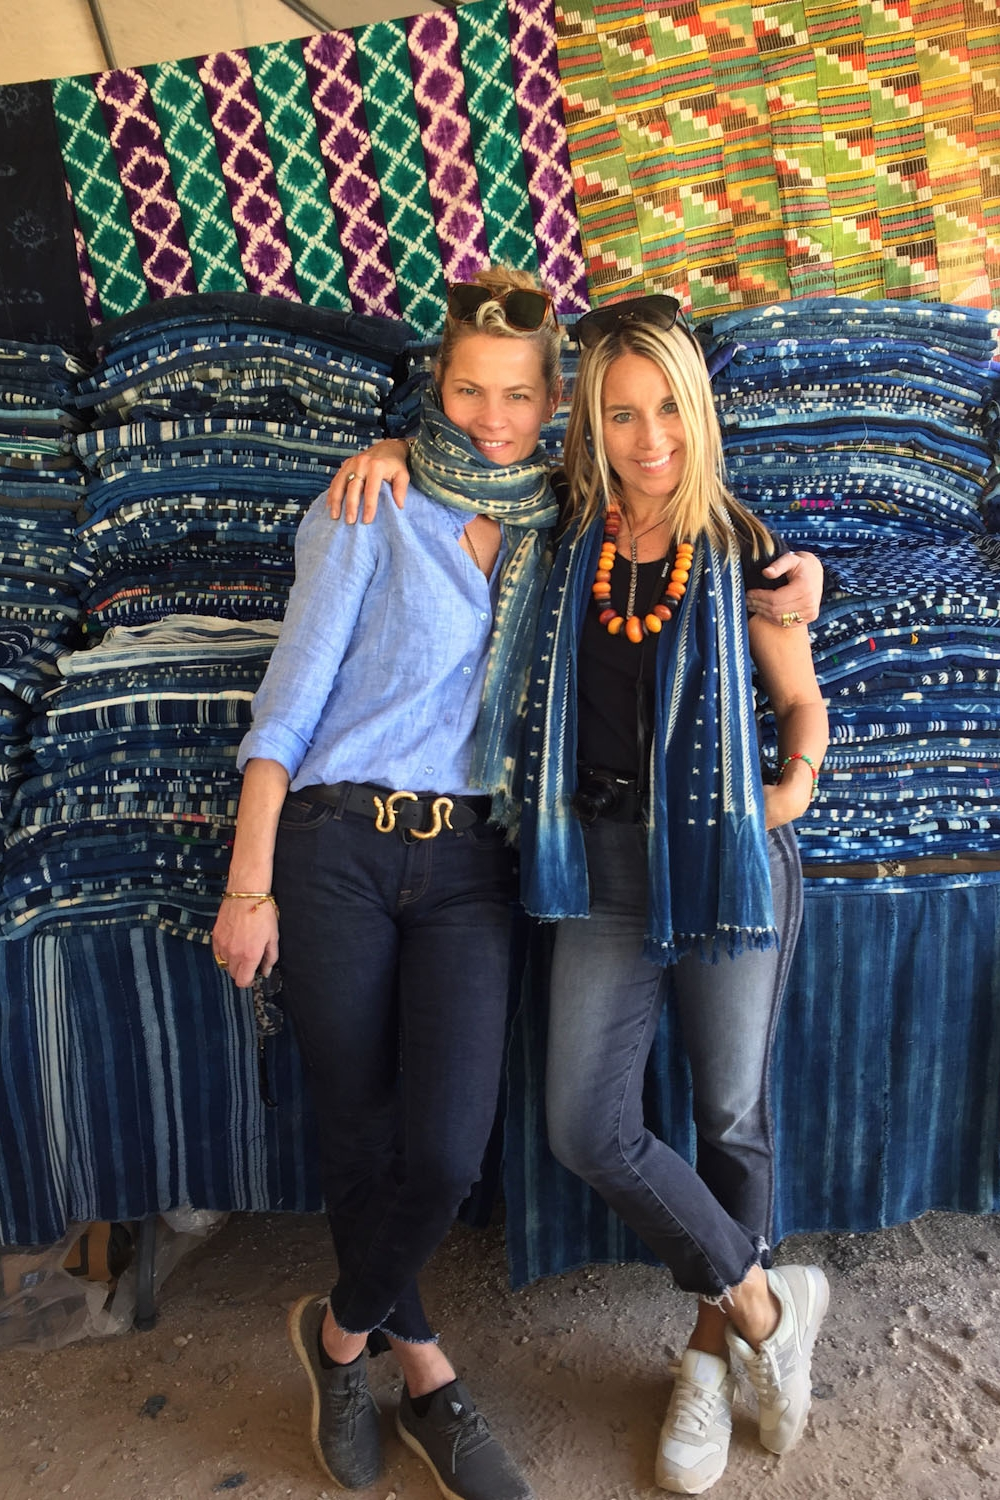 Anuschka and Lynda surrounded by indigo dyed textiles from Mali